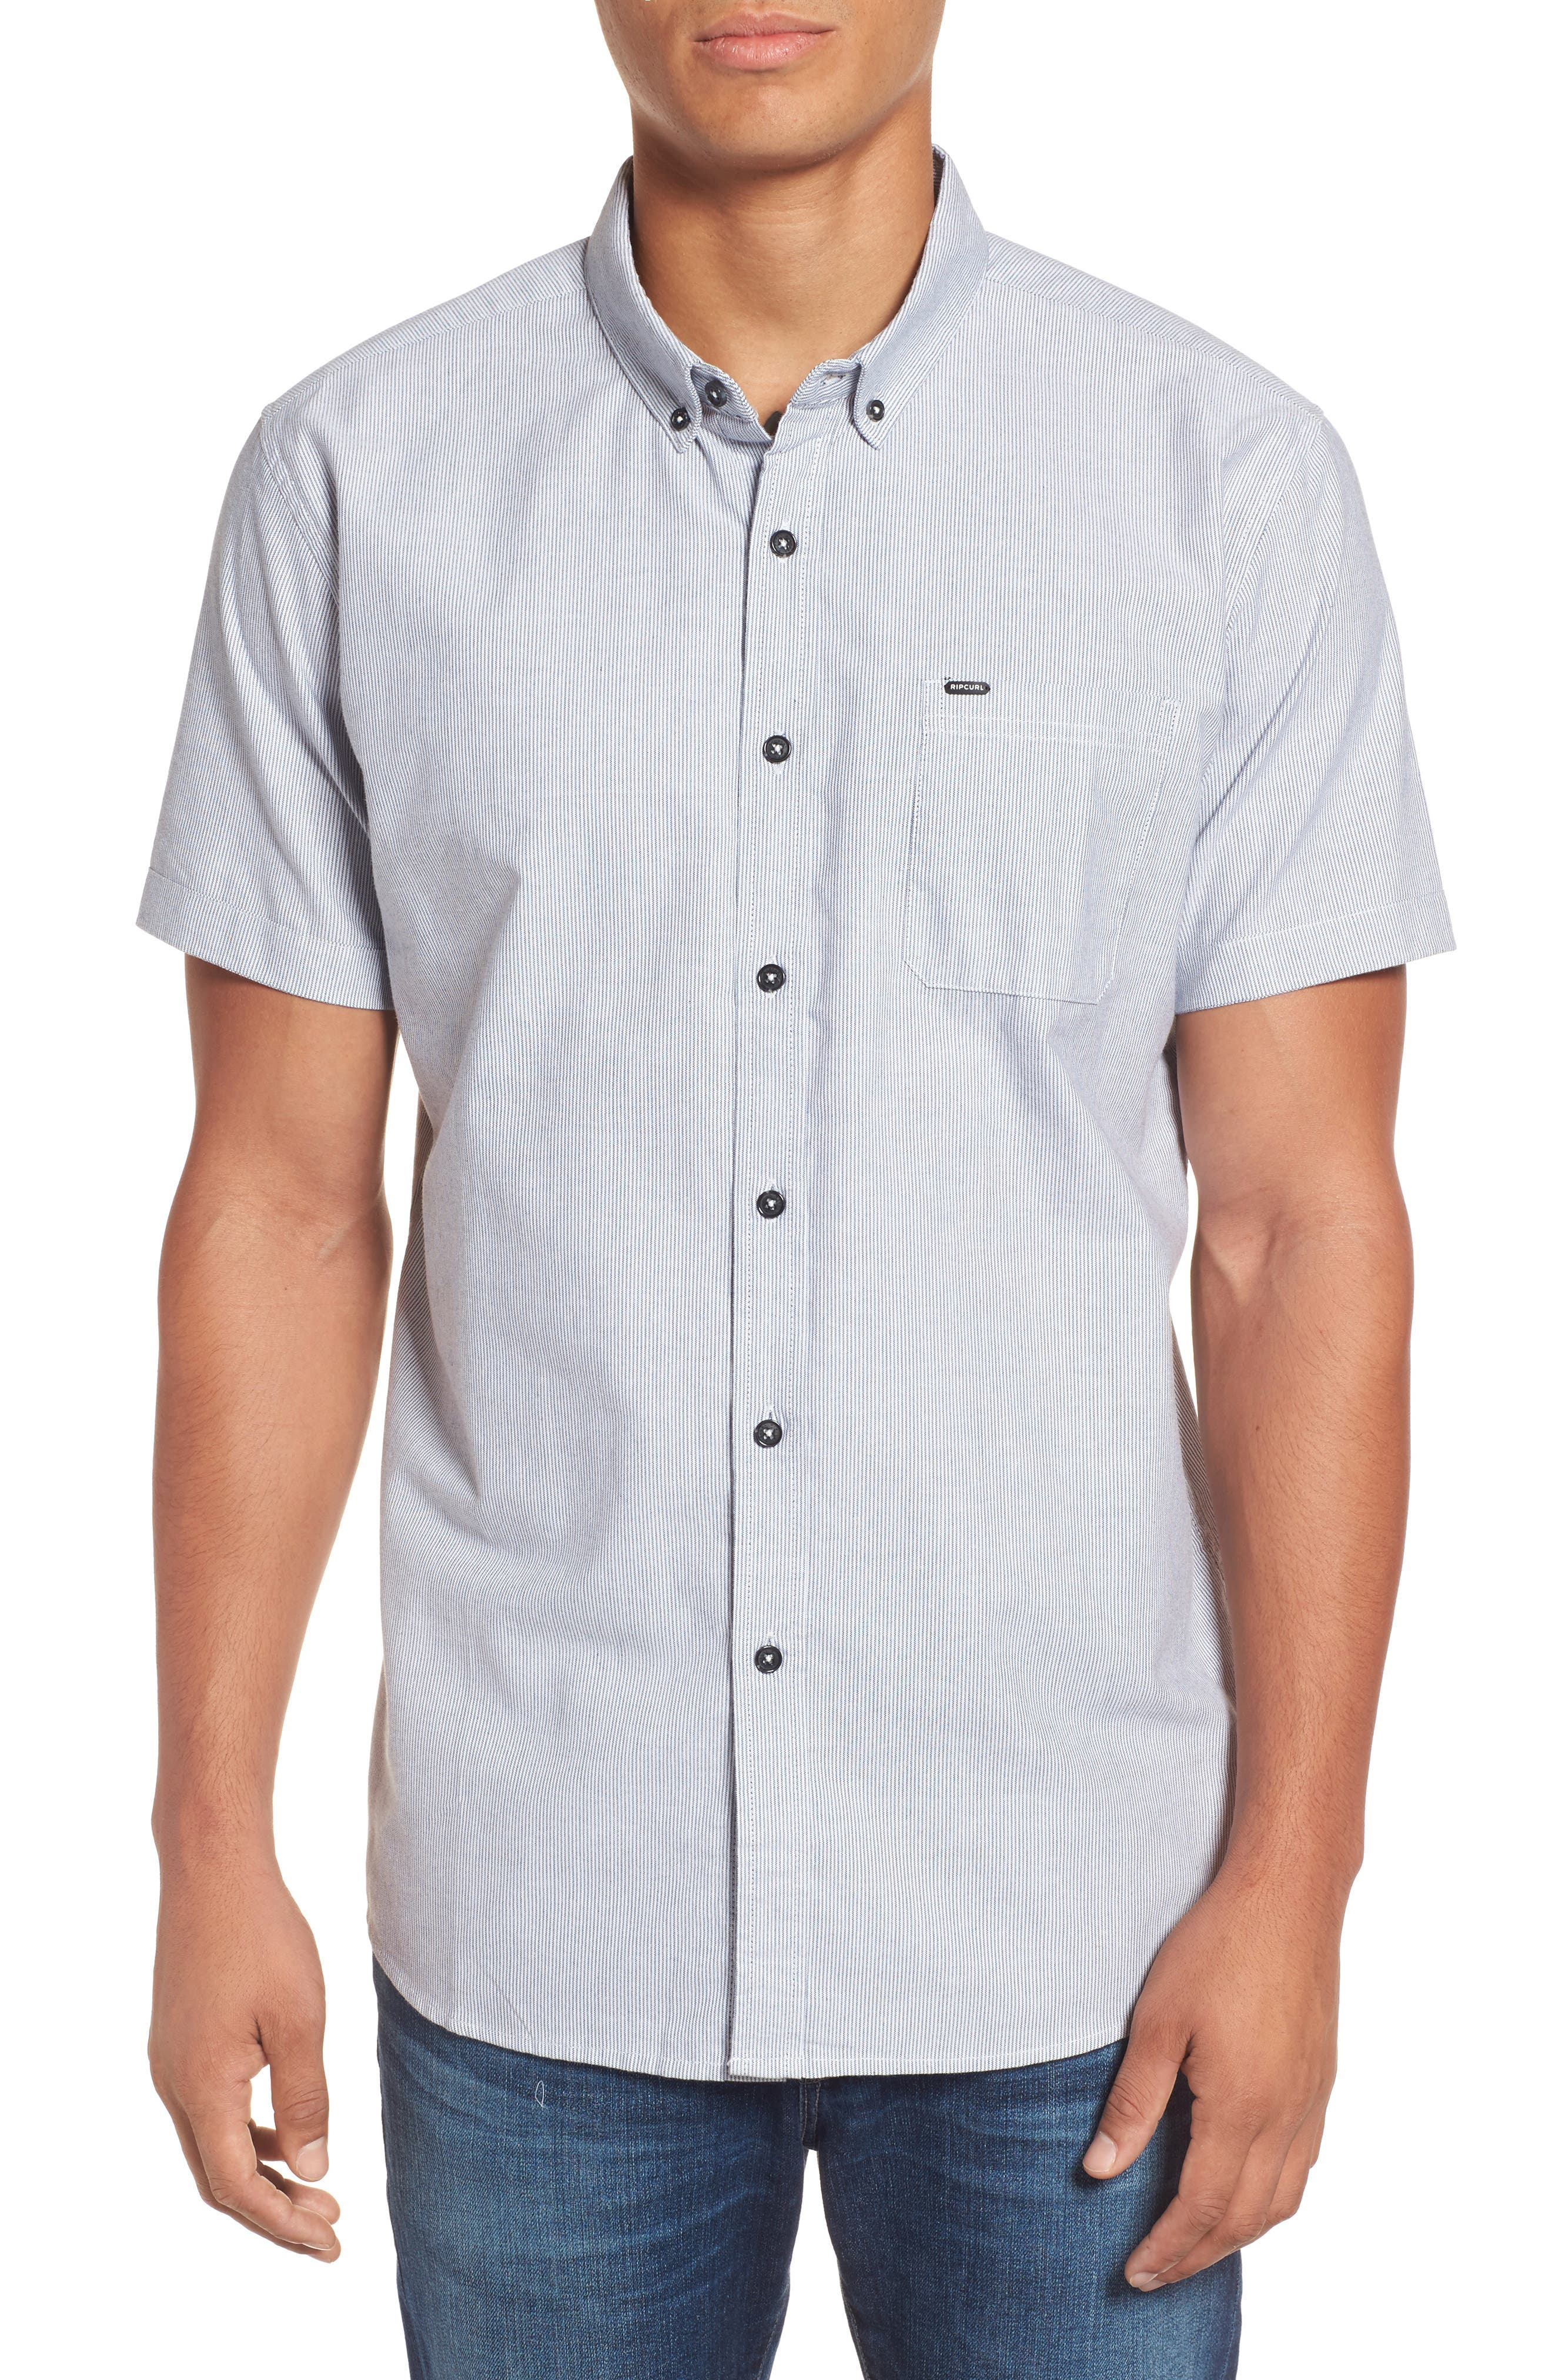 Main Image - Rip Curl Ourtime Woven Shirt